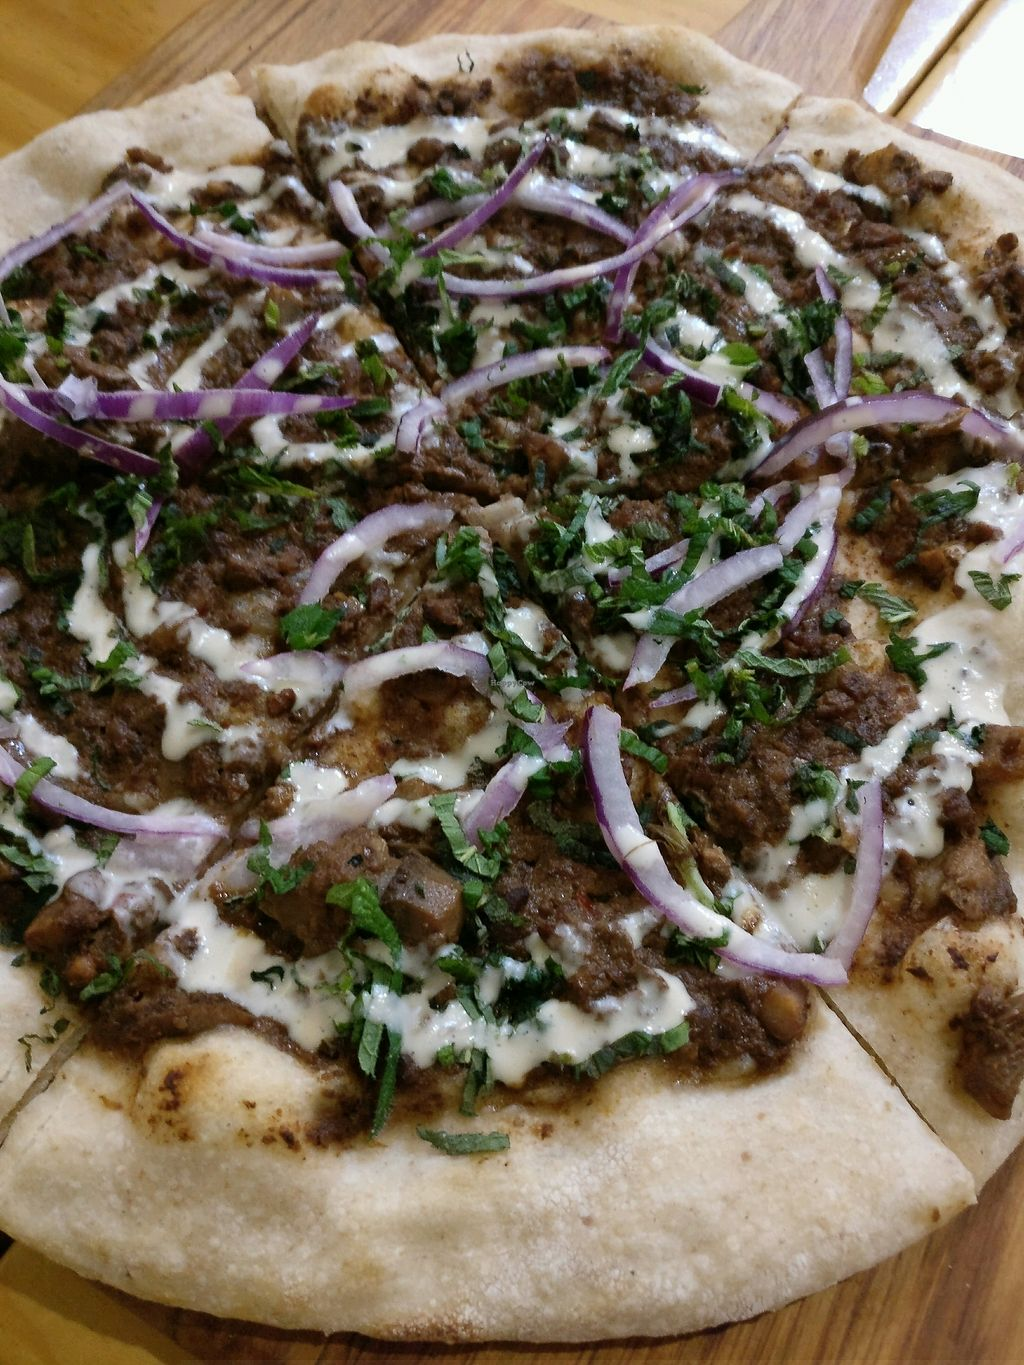 """Photo of Cafe Royale  by <a href=""""/members/profile/Aloo"""">Aloo</a> <br/>pizza with mushrooms, walnuts, tahini, red onions..yum <br/> September 15, 2017  - <a href='/contact/abuse/image/51920/304642'>Report</a>"""